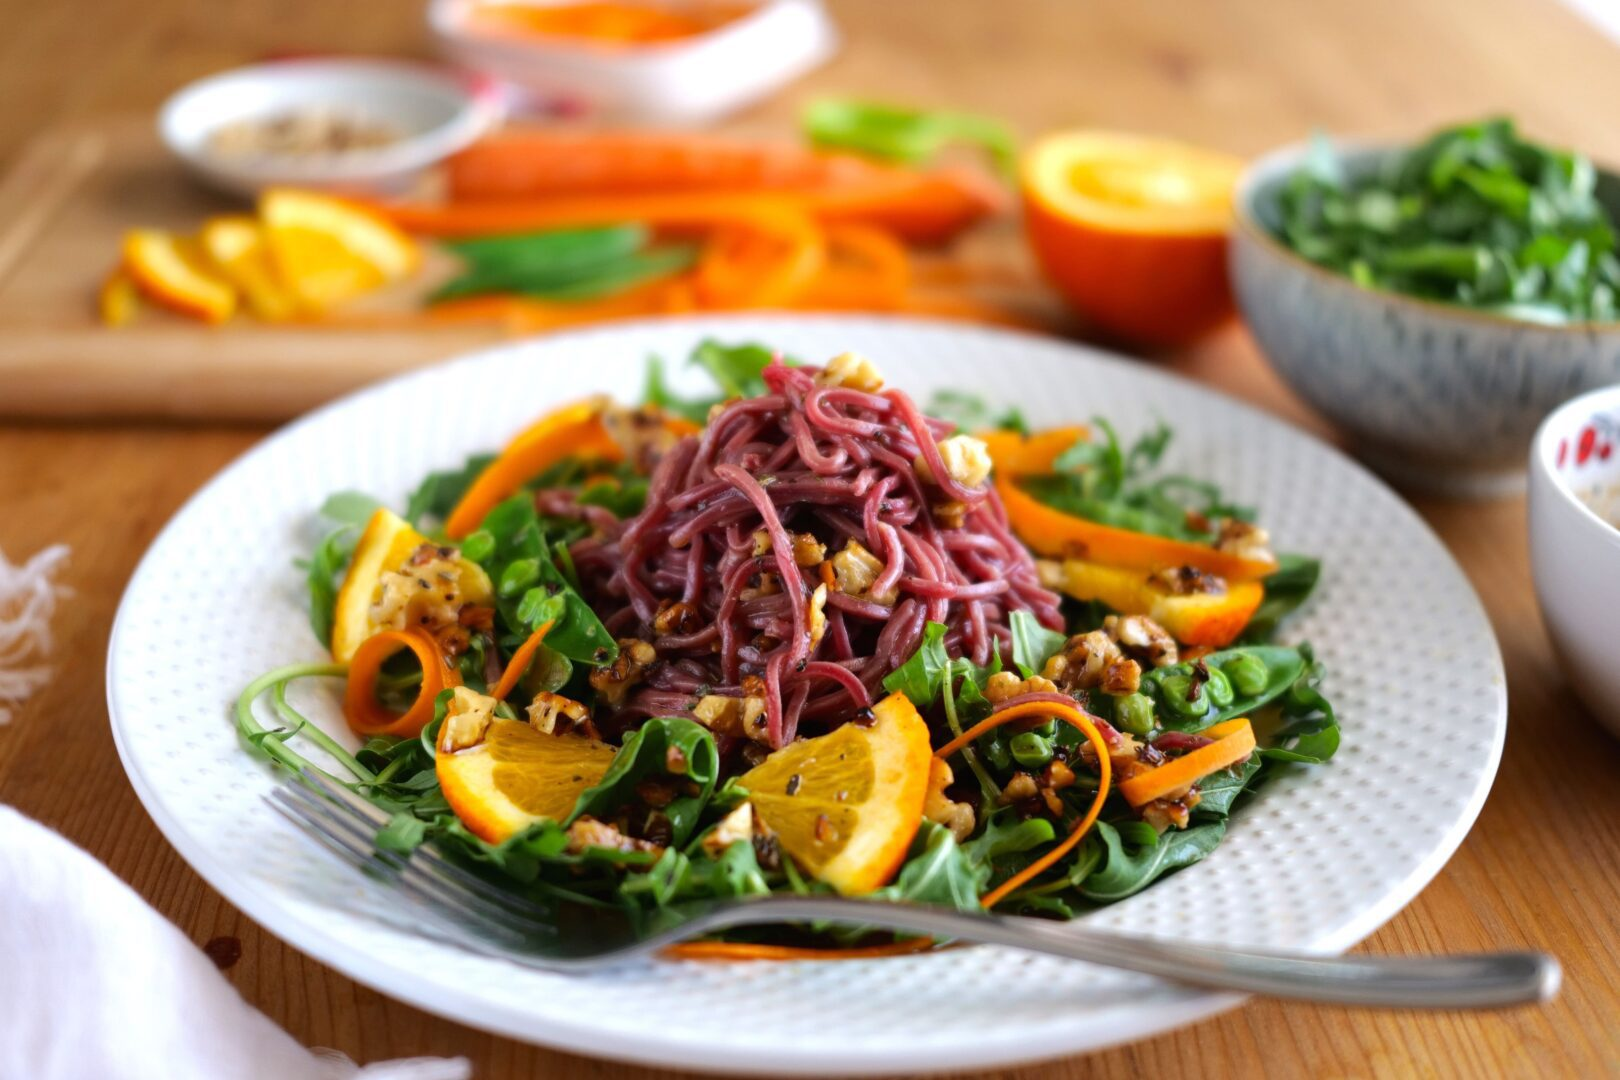 Beets-Noodles Salad with Balsamic Dressing